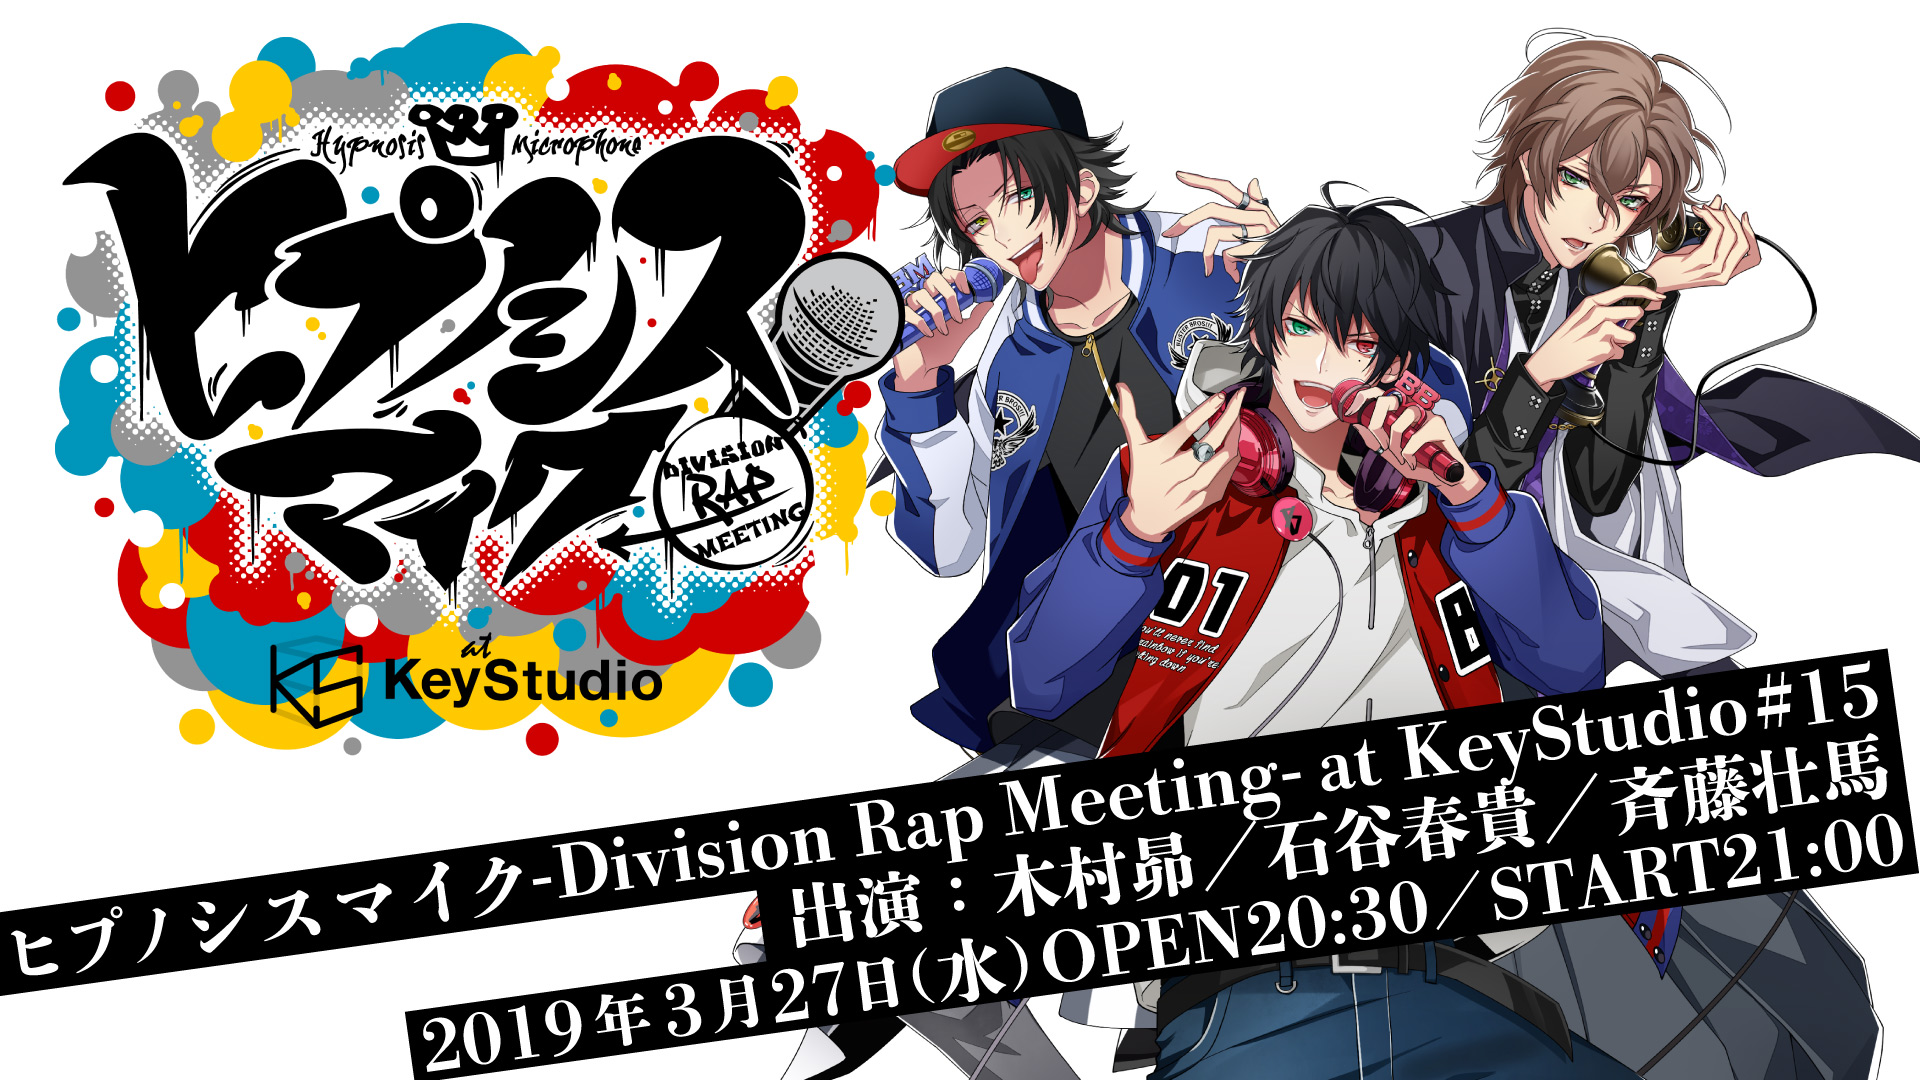 ヒプノシスマイク -Division Rap Meeting- at KeyStudio #15